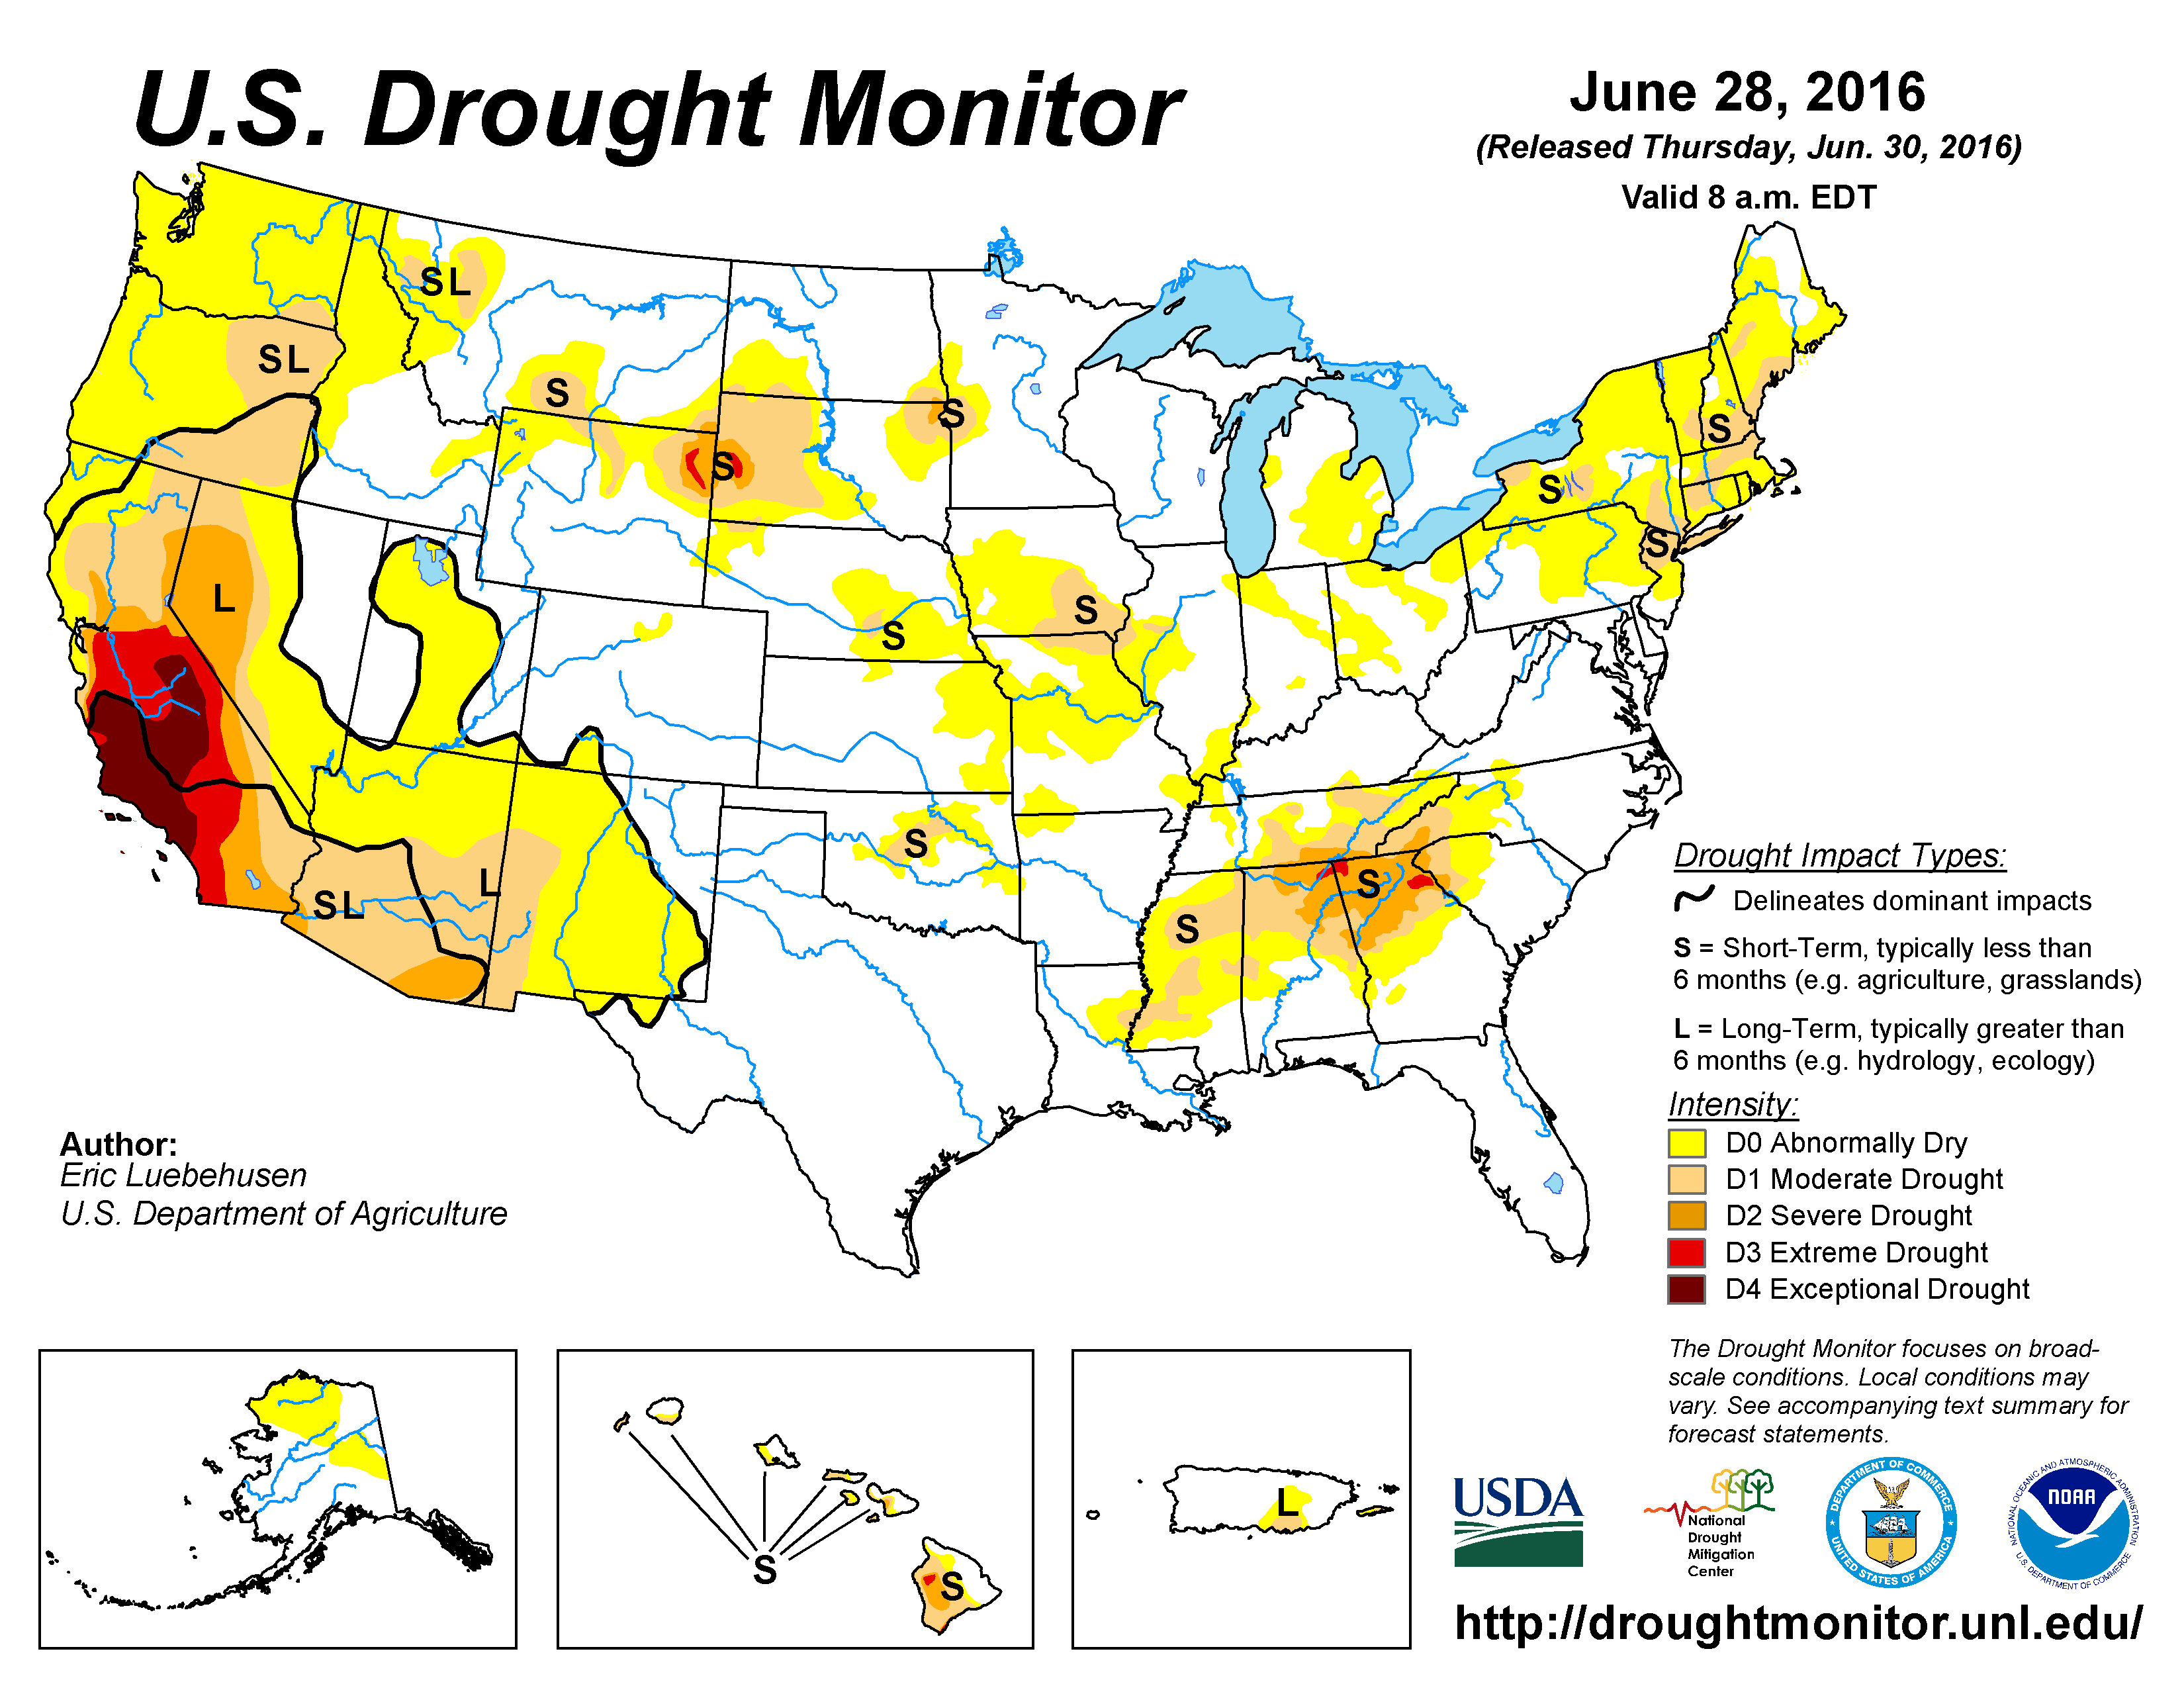 The U.S. Drought Monitor drought map valid June 28, 2016